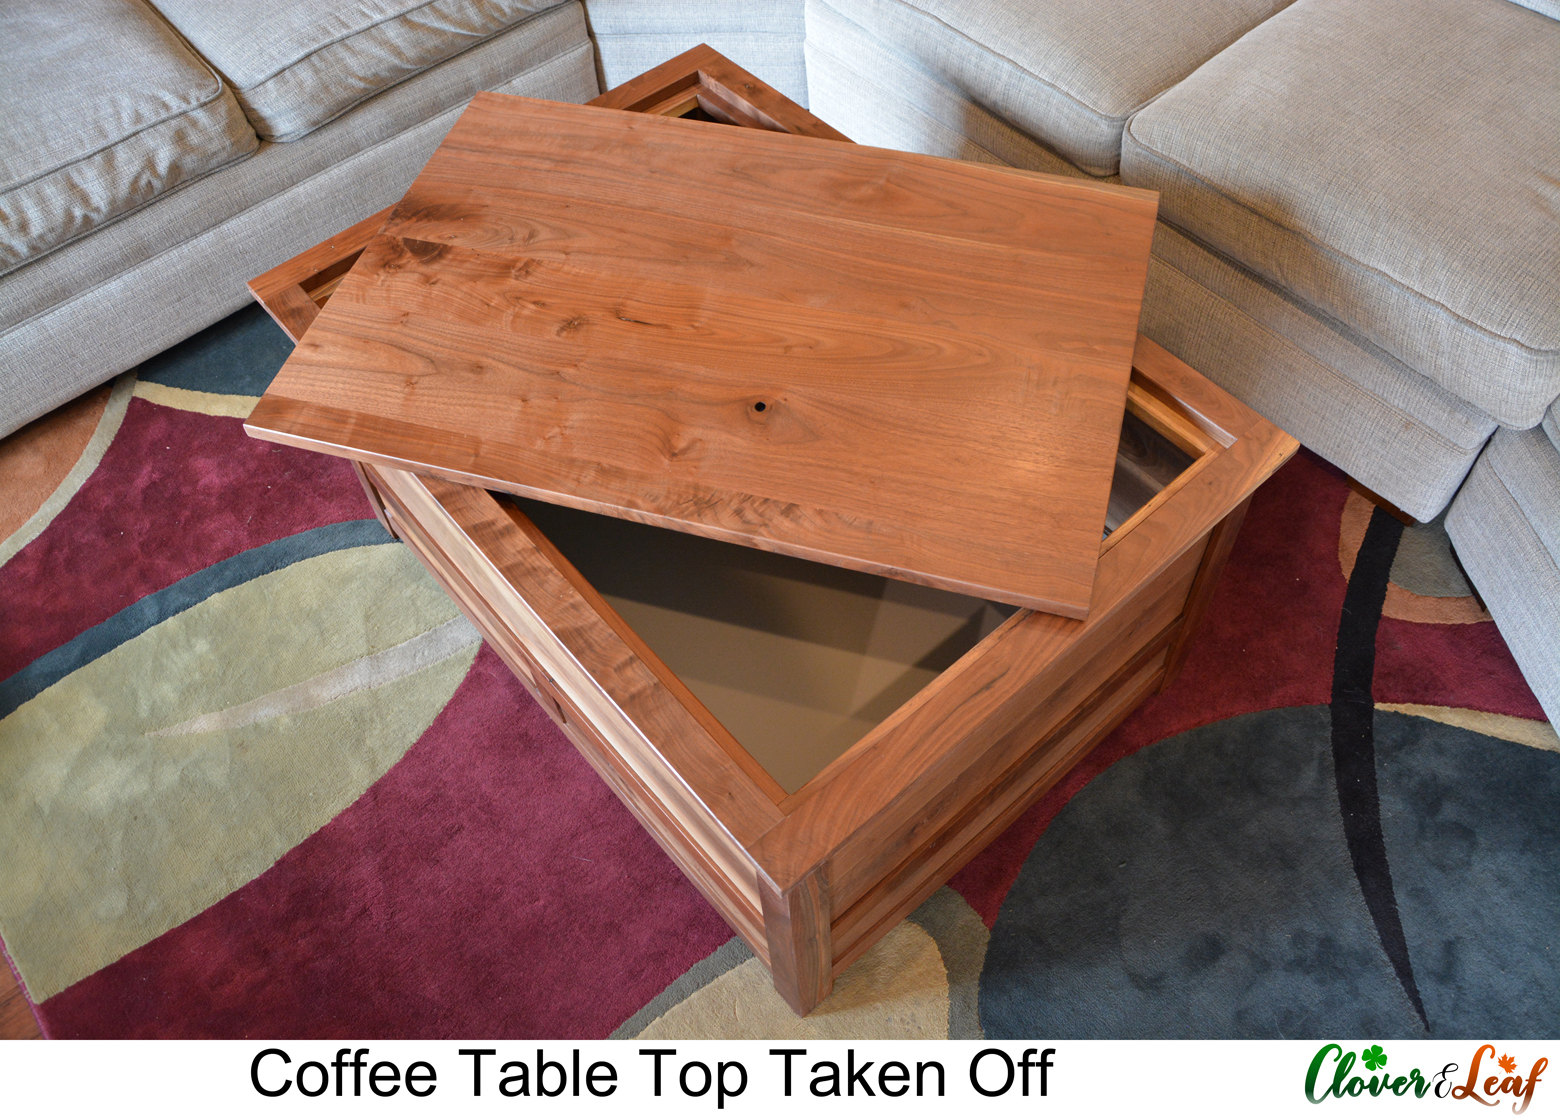 Coffee Table With Top Taken Off.jpg